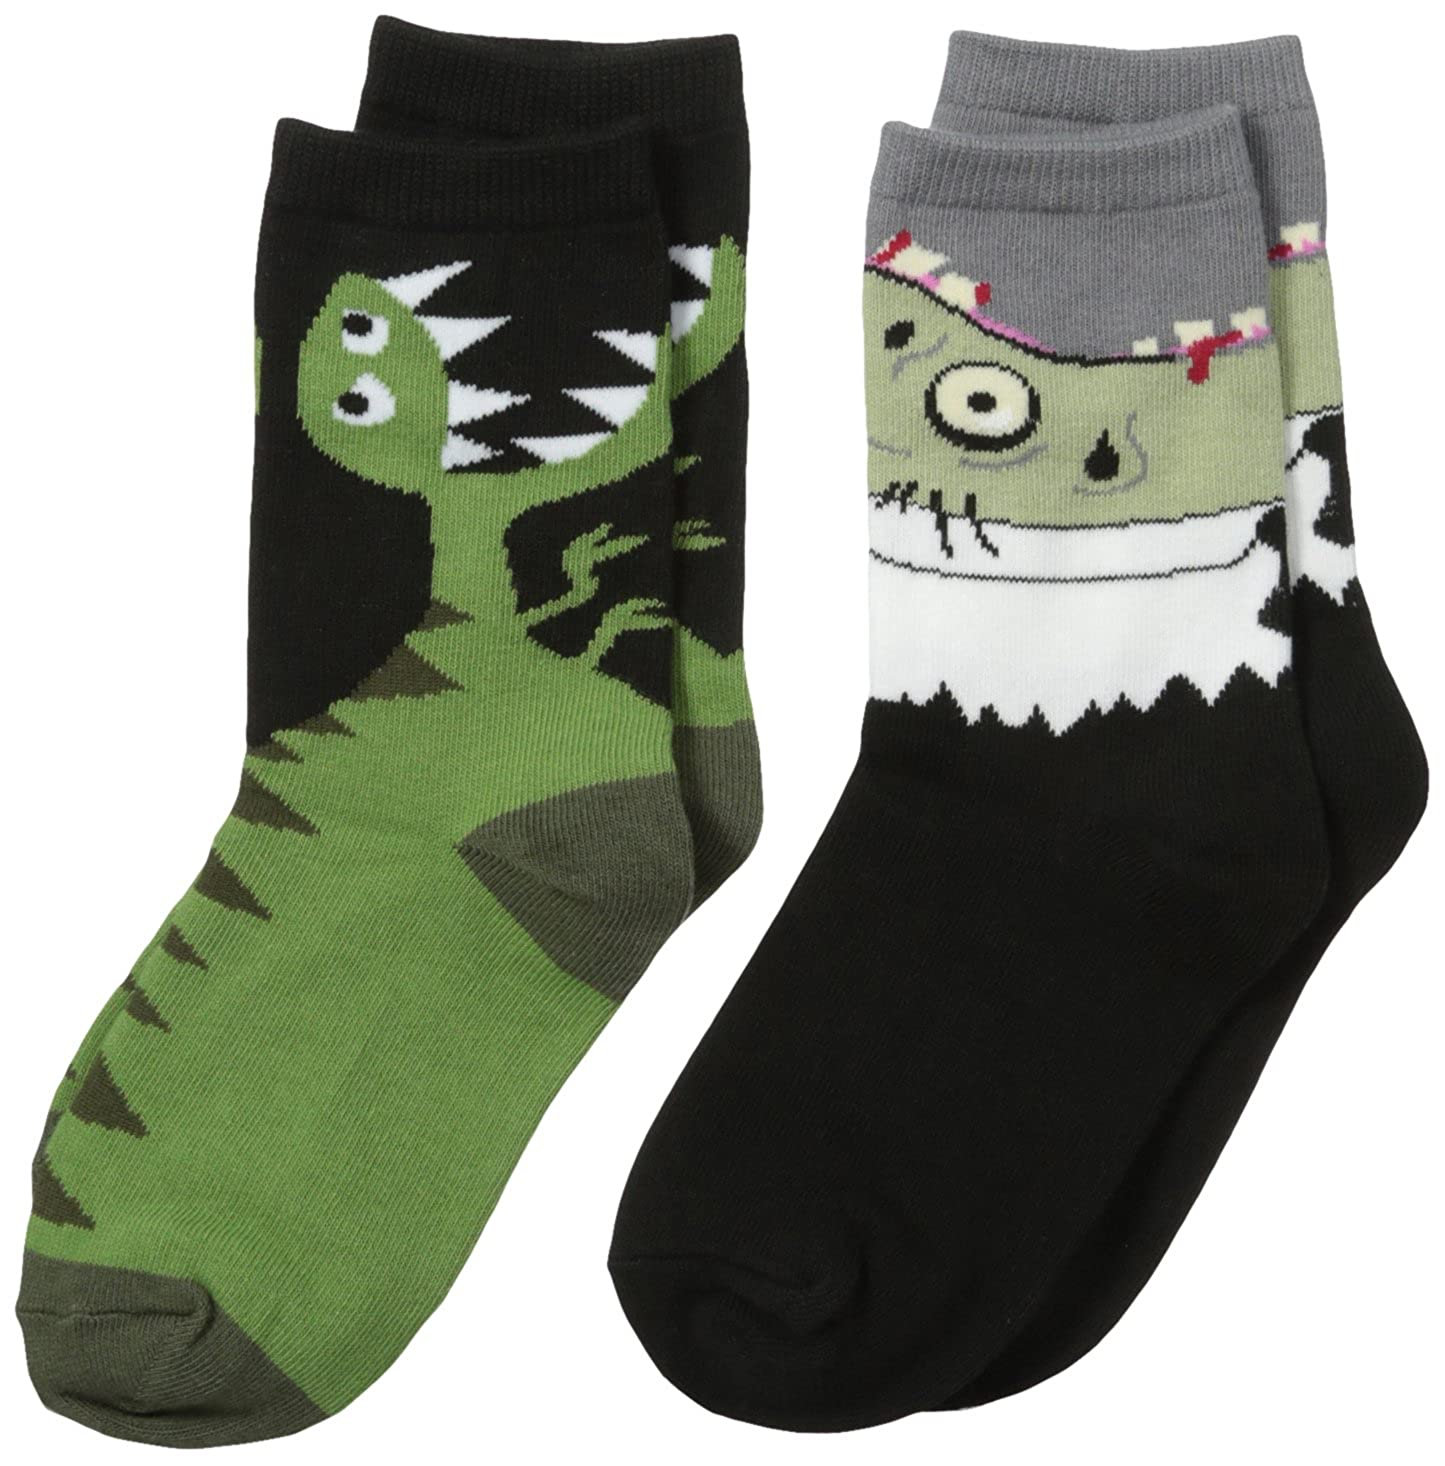 K.Bell Black Label Big Boys' 2 Pack Dino and Zombie Socks, Assort, 6-8.5 K. Bell Boys 2-7